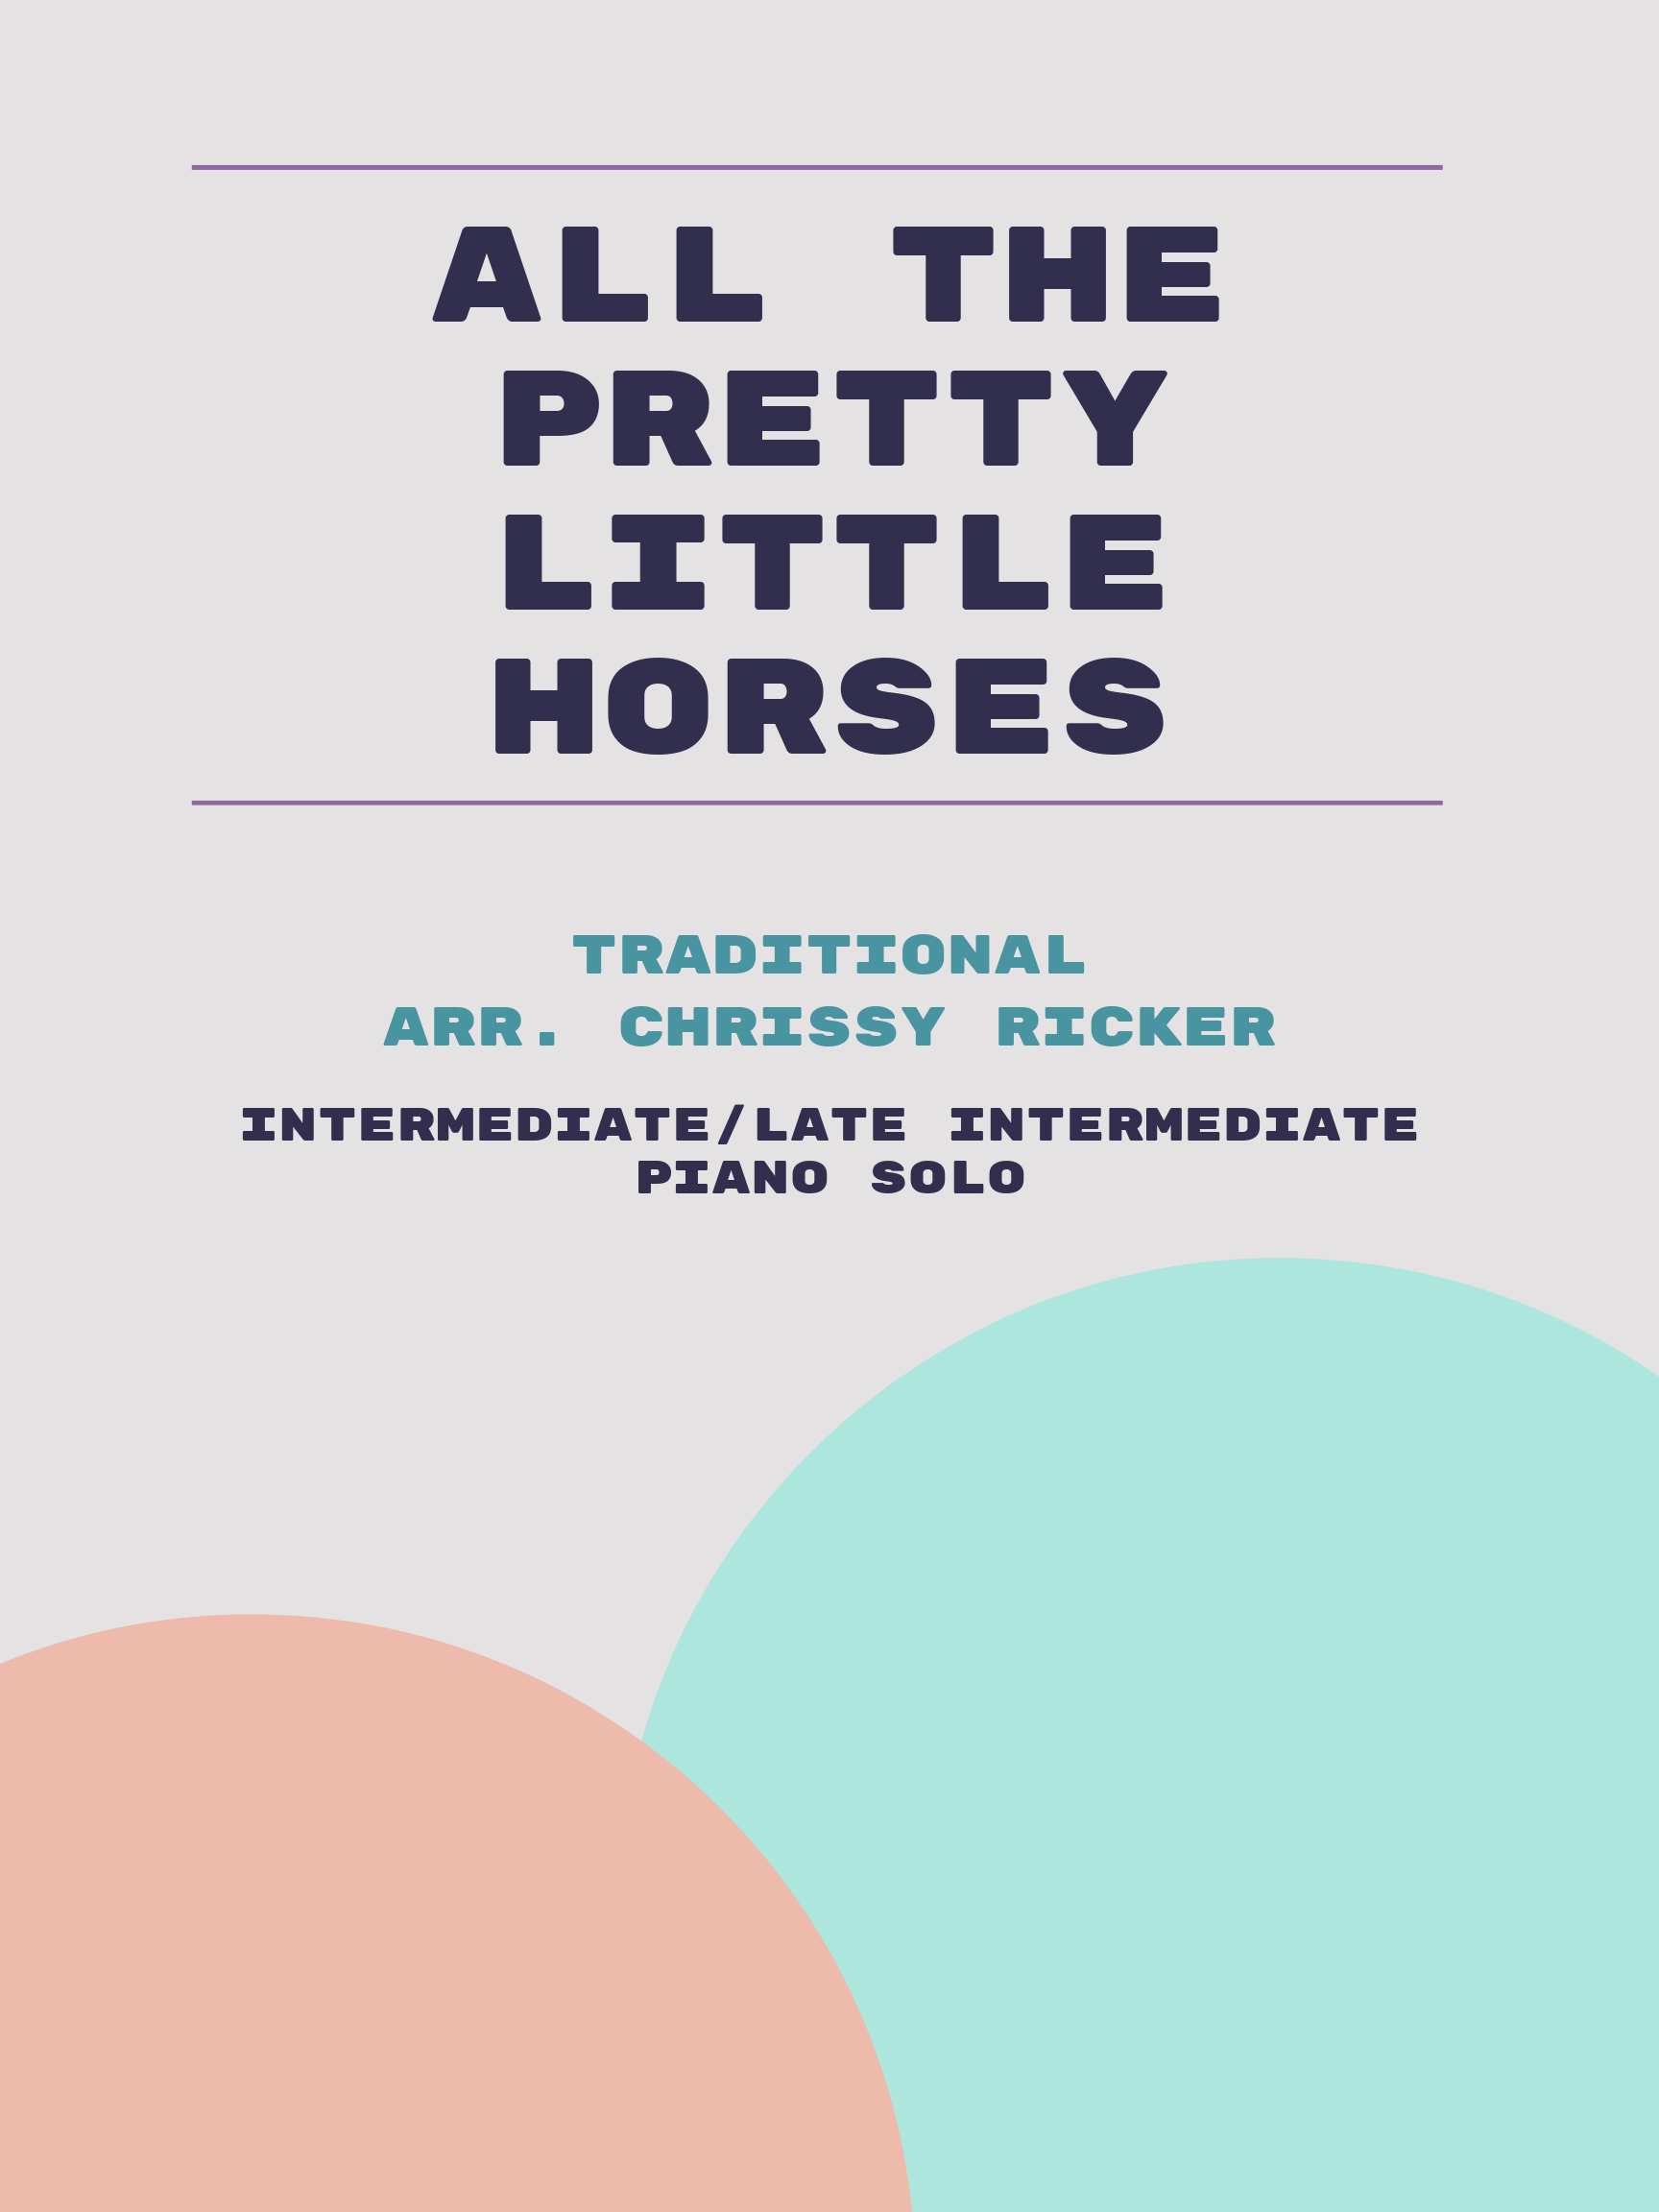 All the Pretty Little Horses by Traditional